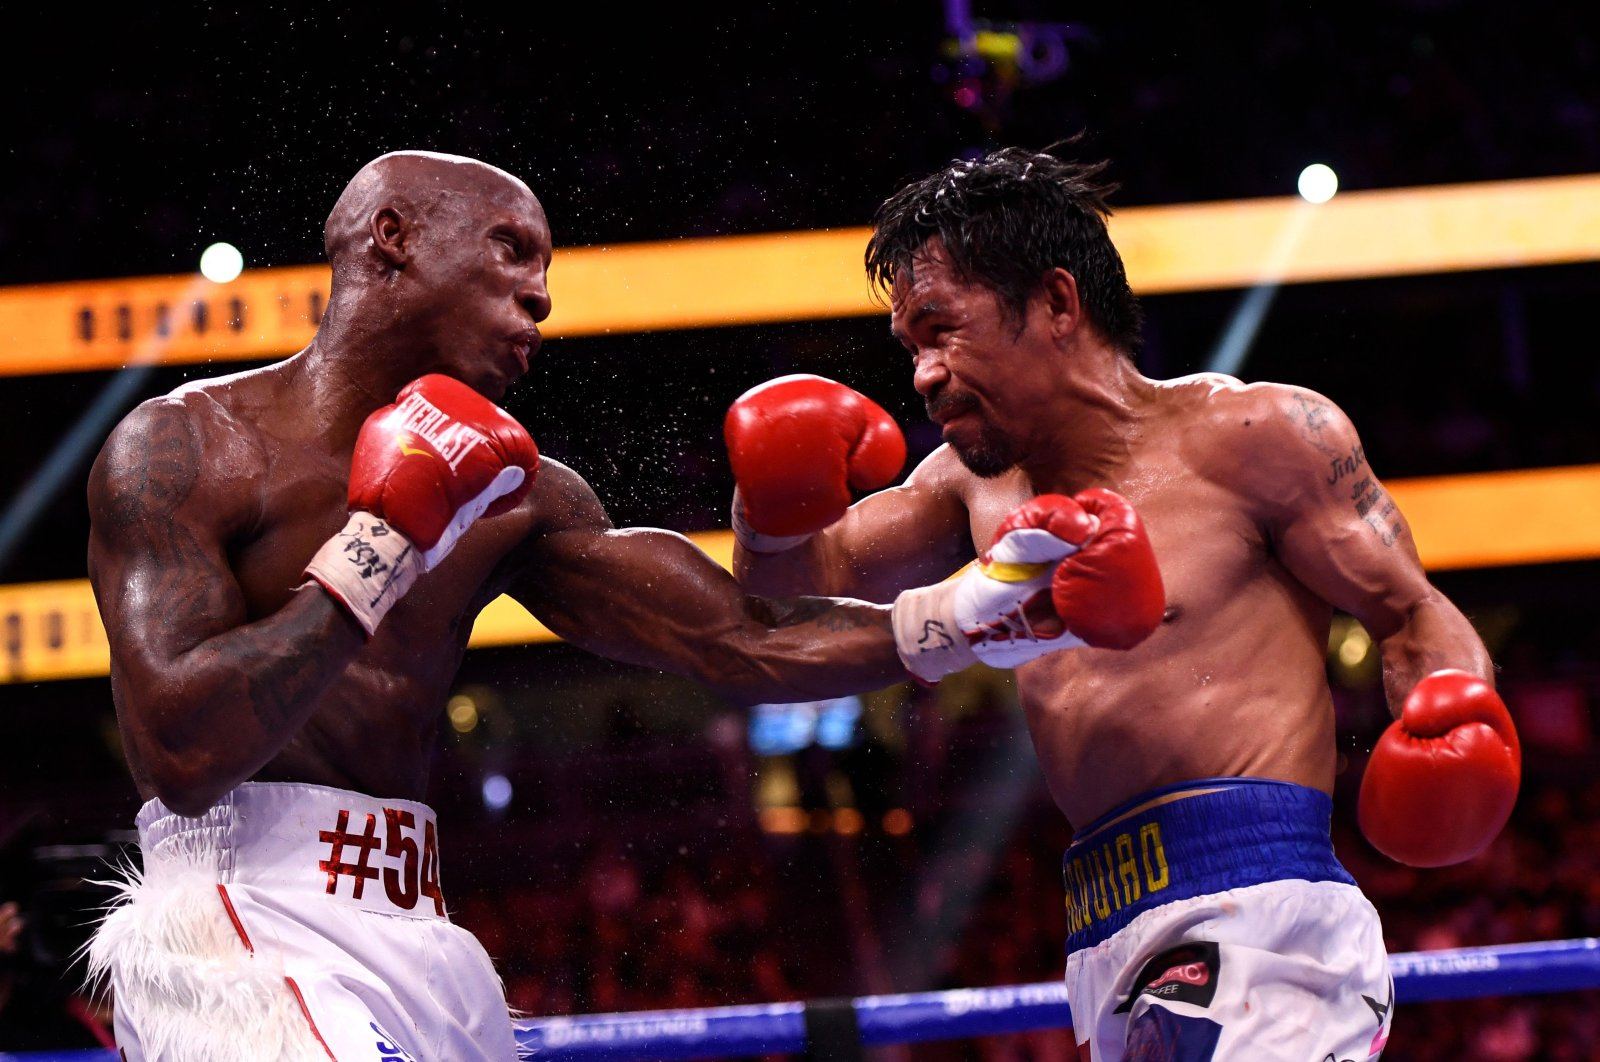 Philippines' Manny Pacquiao (R) fights against Cuba's Yordenis Ugas in the WBA Welterweight Championship boxing match at T-Mobile Arena in Las Vegas, U.S., Aug. 21, 2021. (AFP Photo)